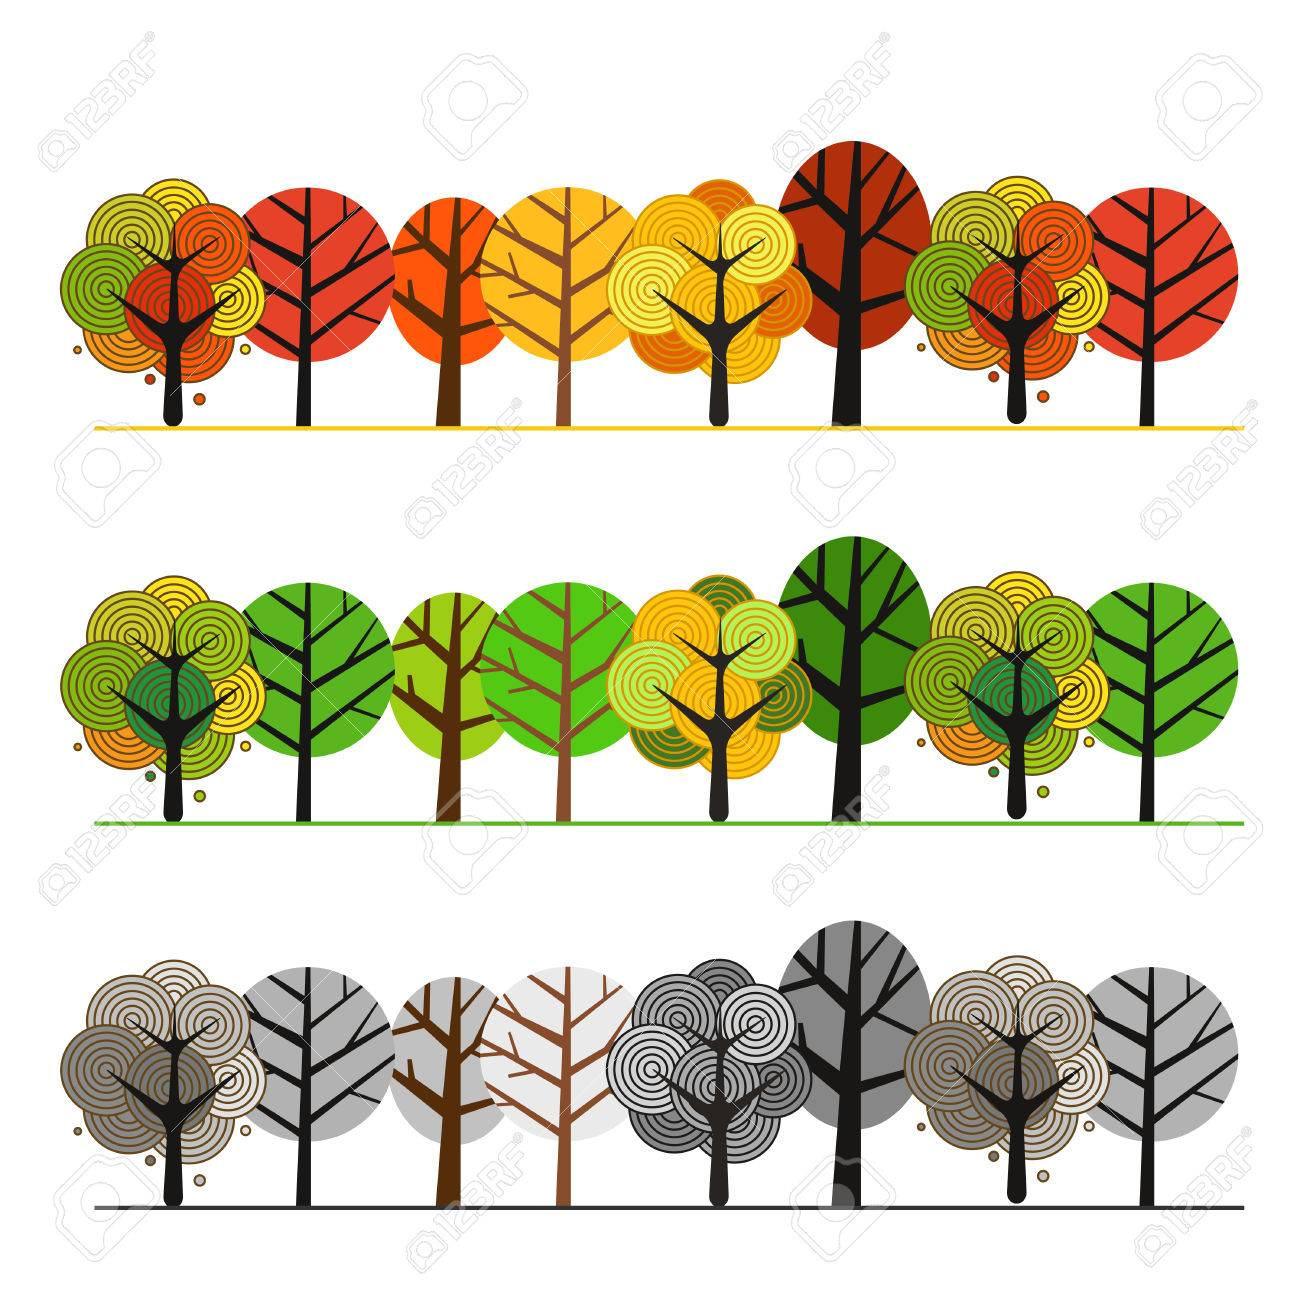 Different seasons of forest. Illustration concept - 43694130